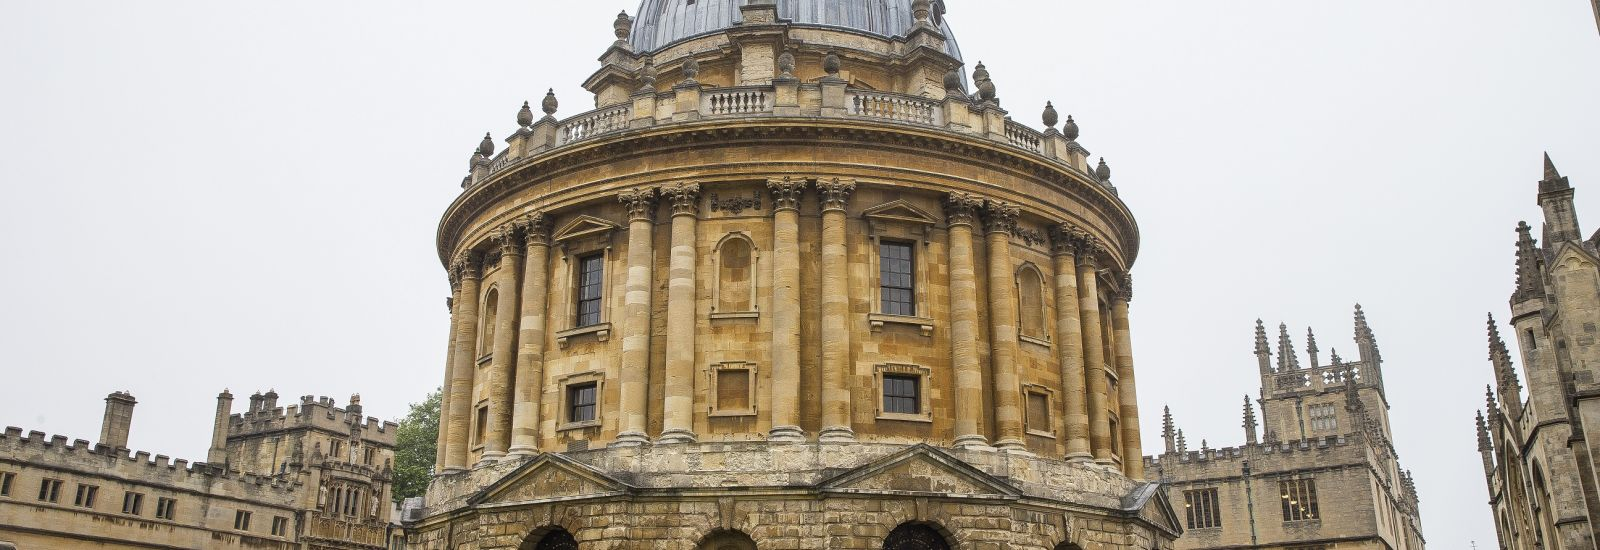 Landscape photo of the Radcliffe Camera and surrounding buildings with a cyclist in the foreground